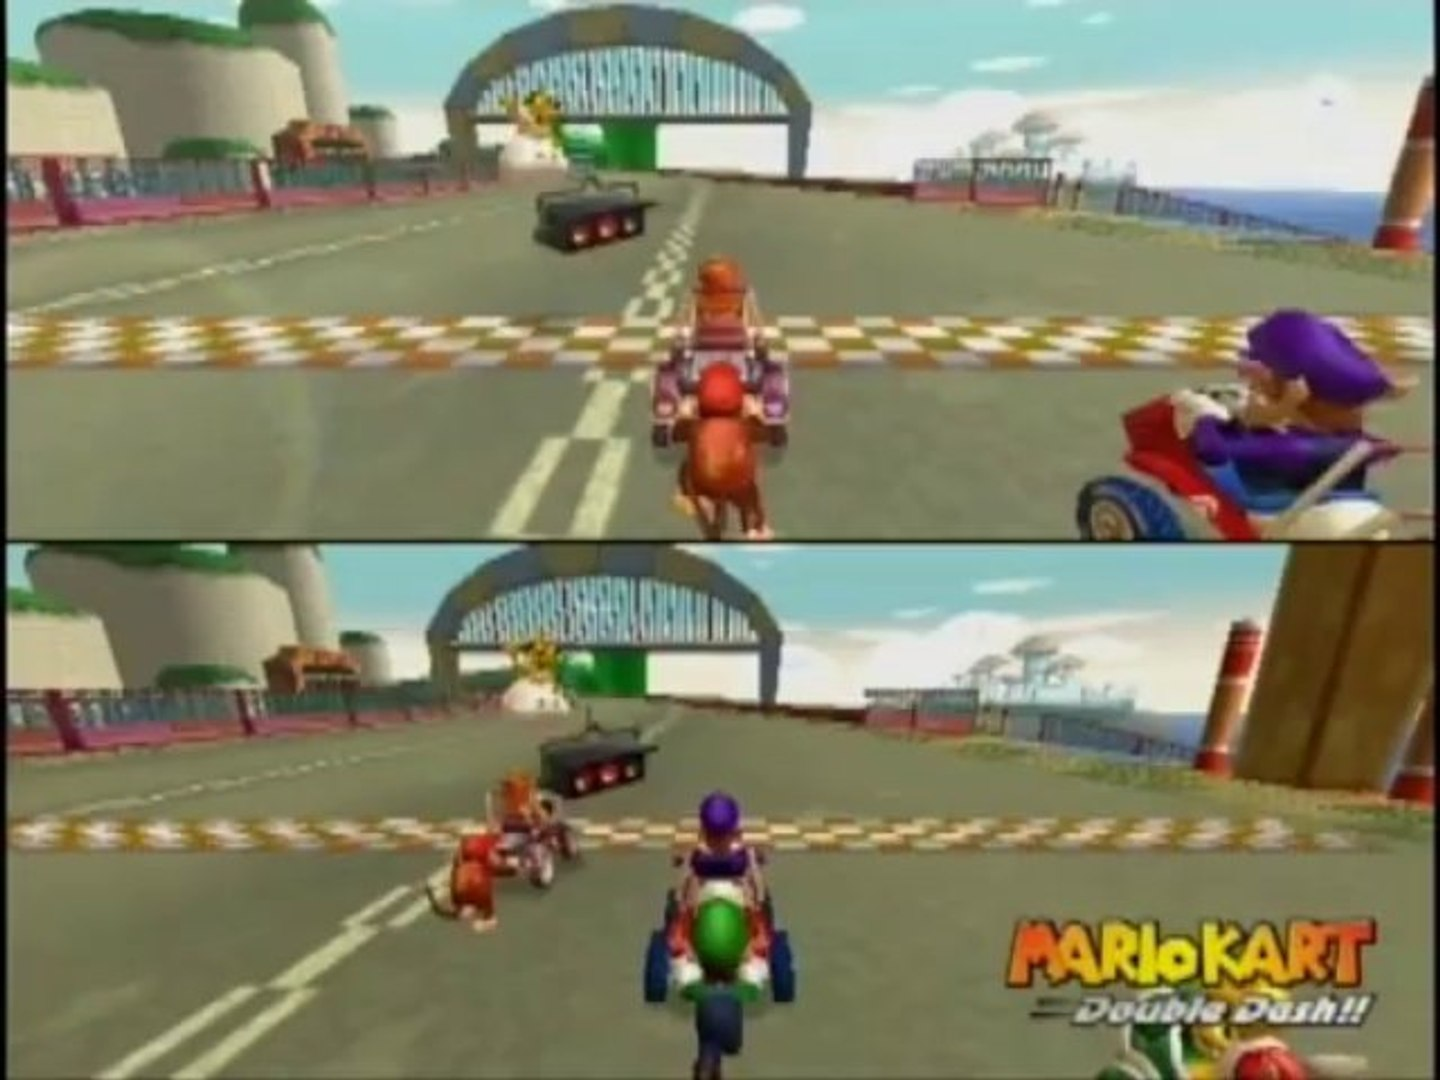 Mario Kart Wii Wii Walkthrough Snes Mario Circuit 3 Youtube